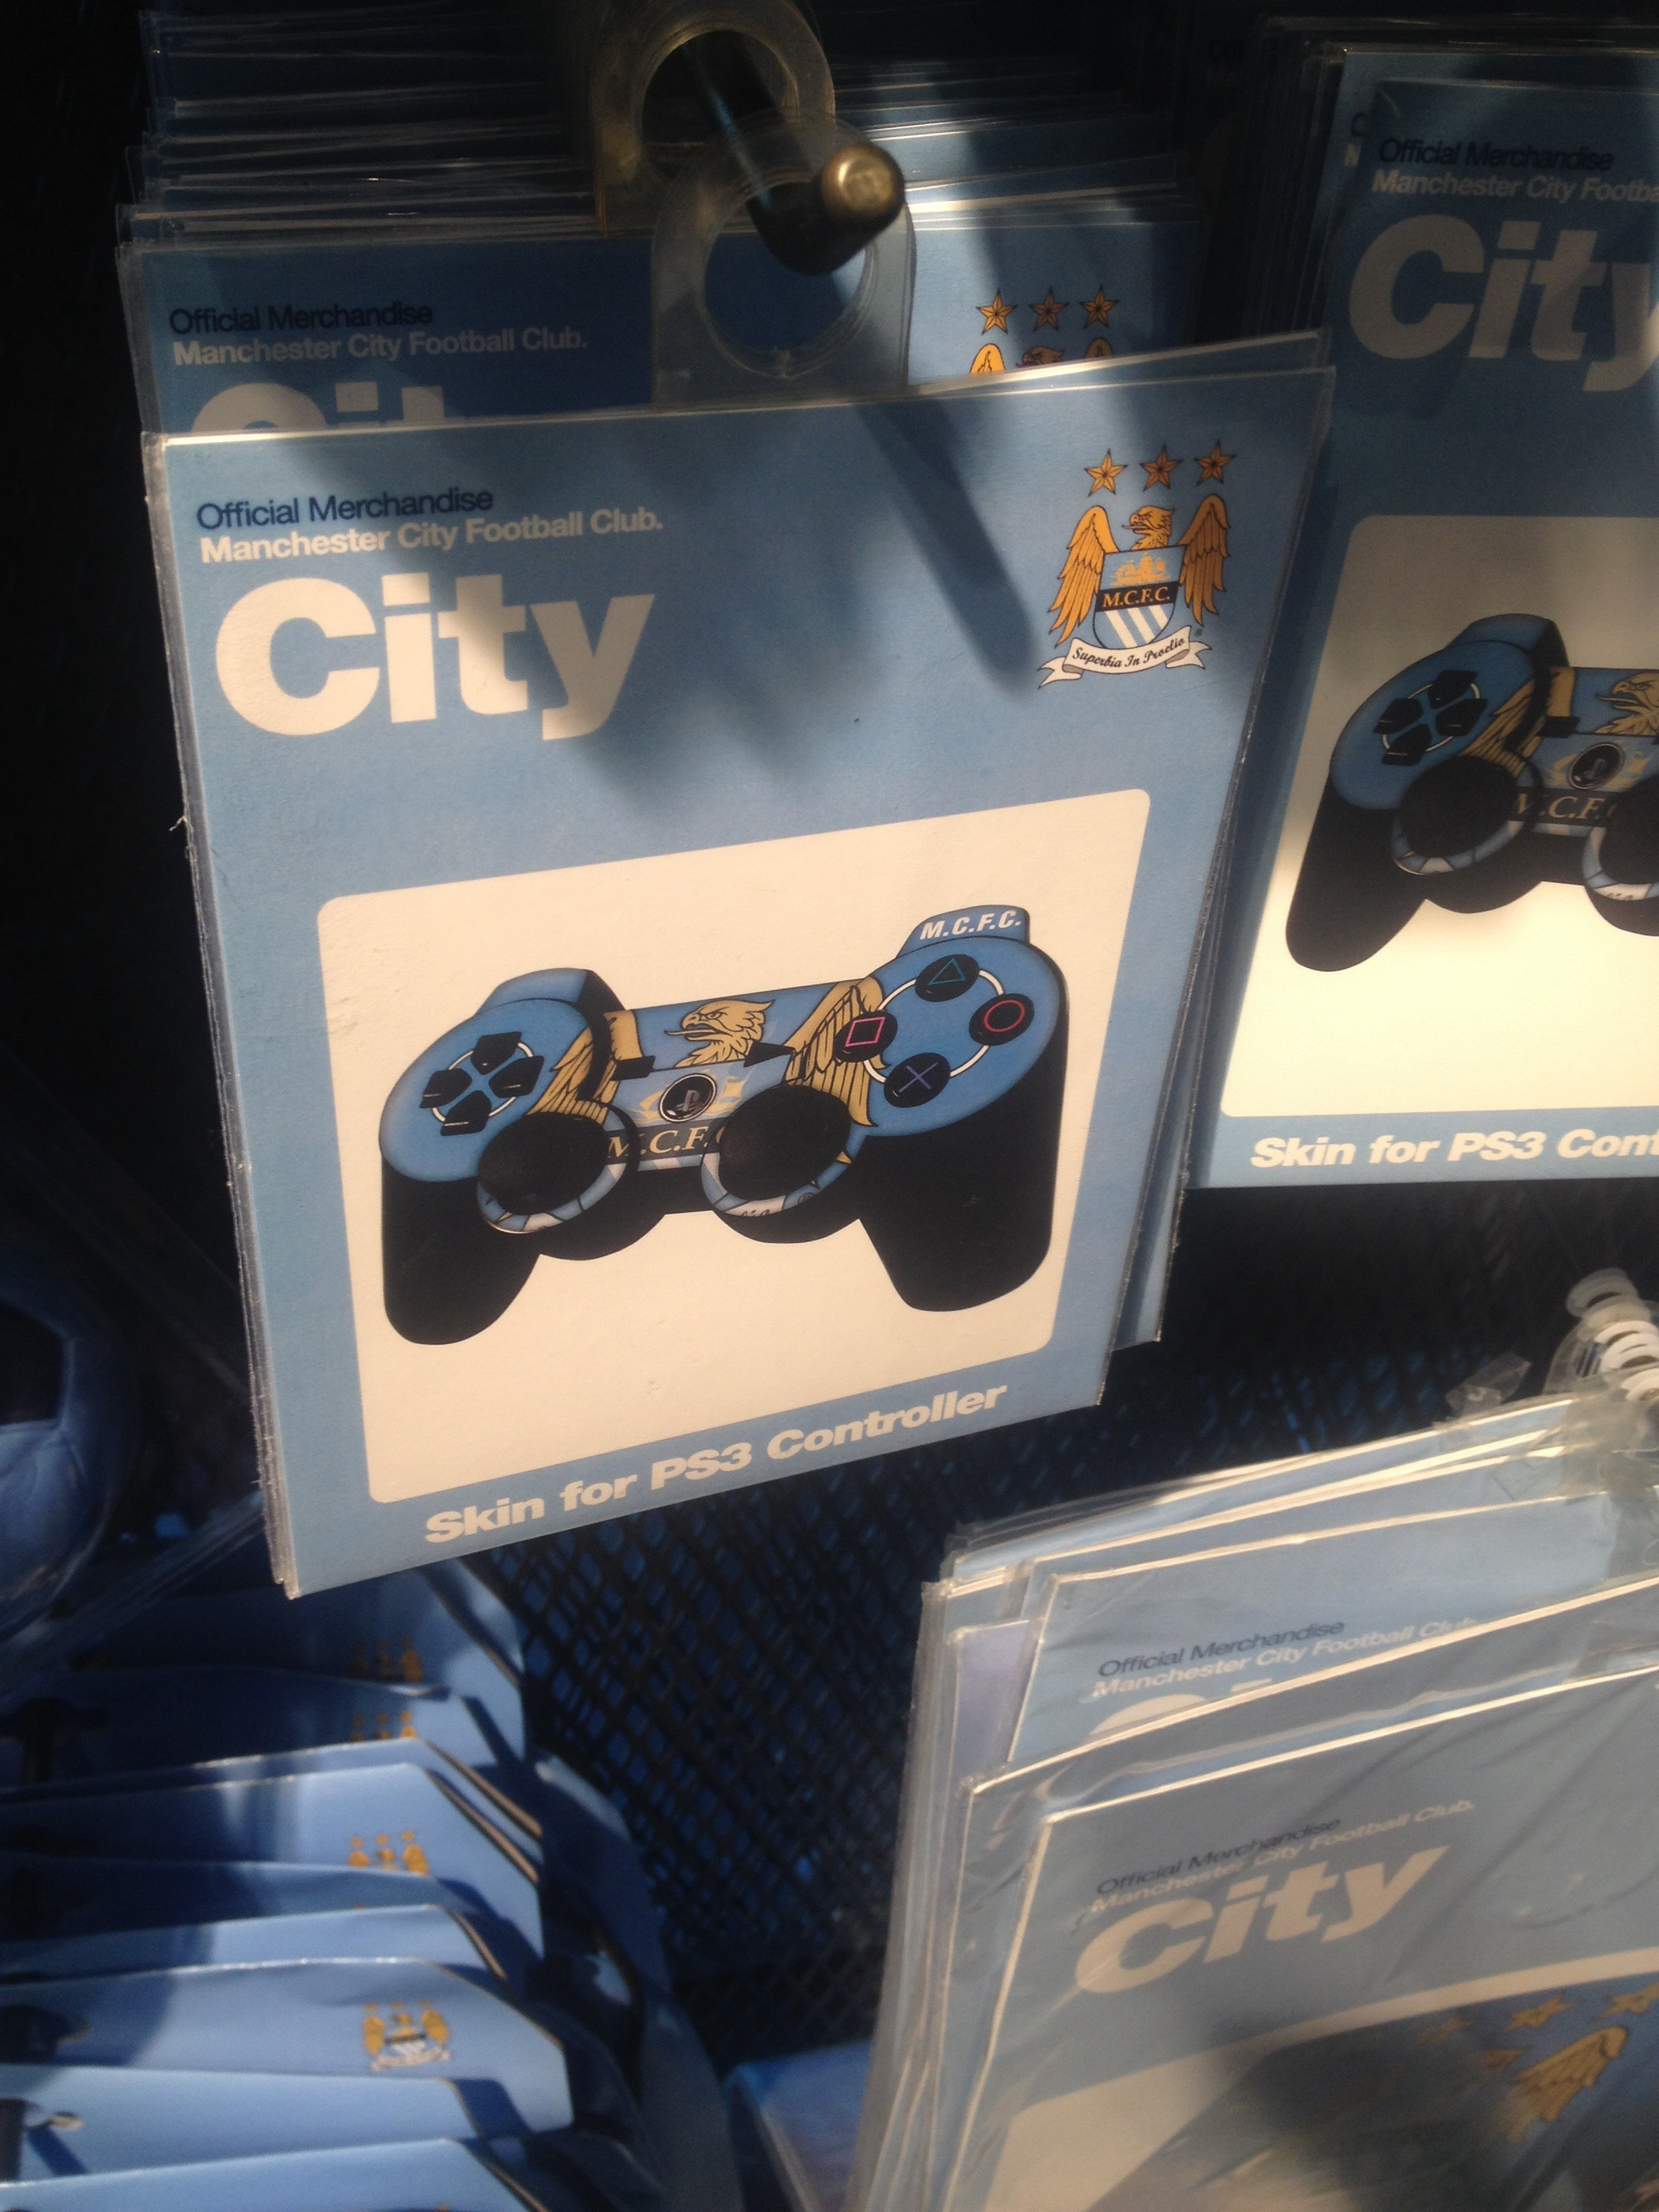 PS3 console skins